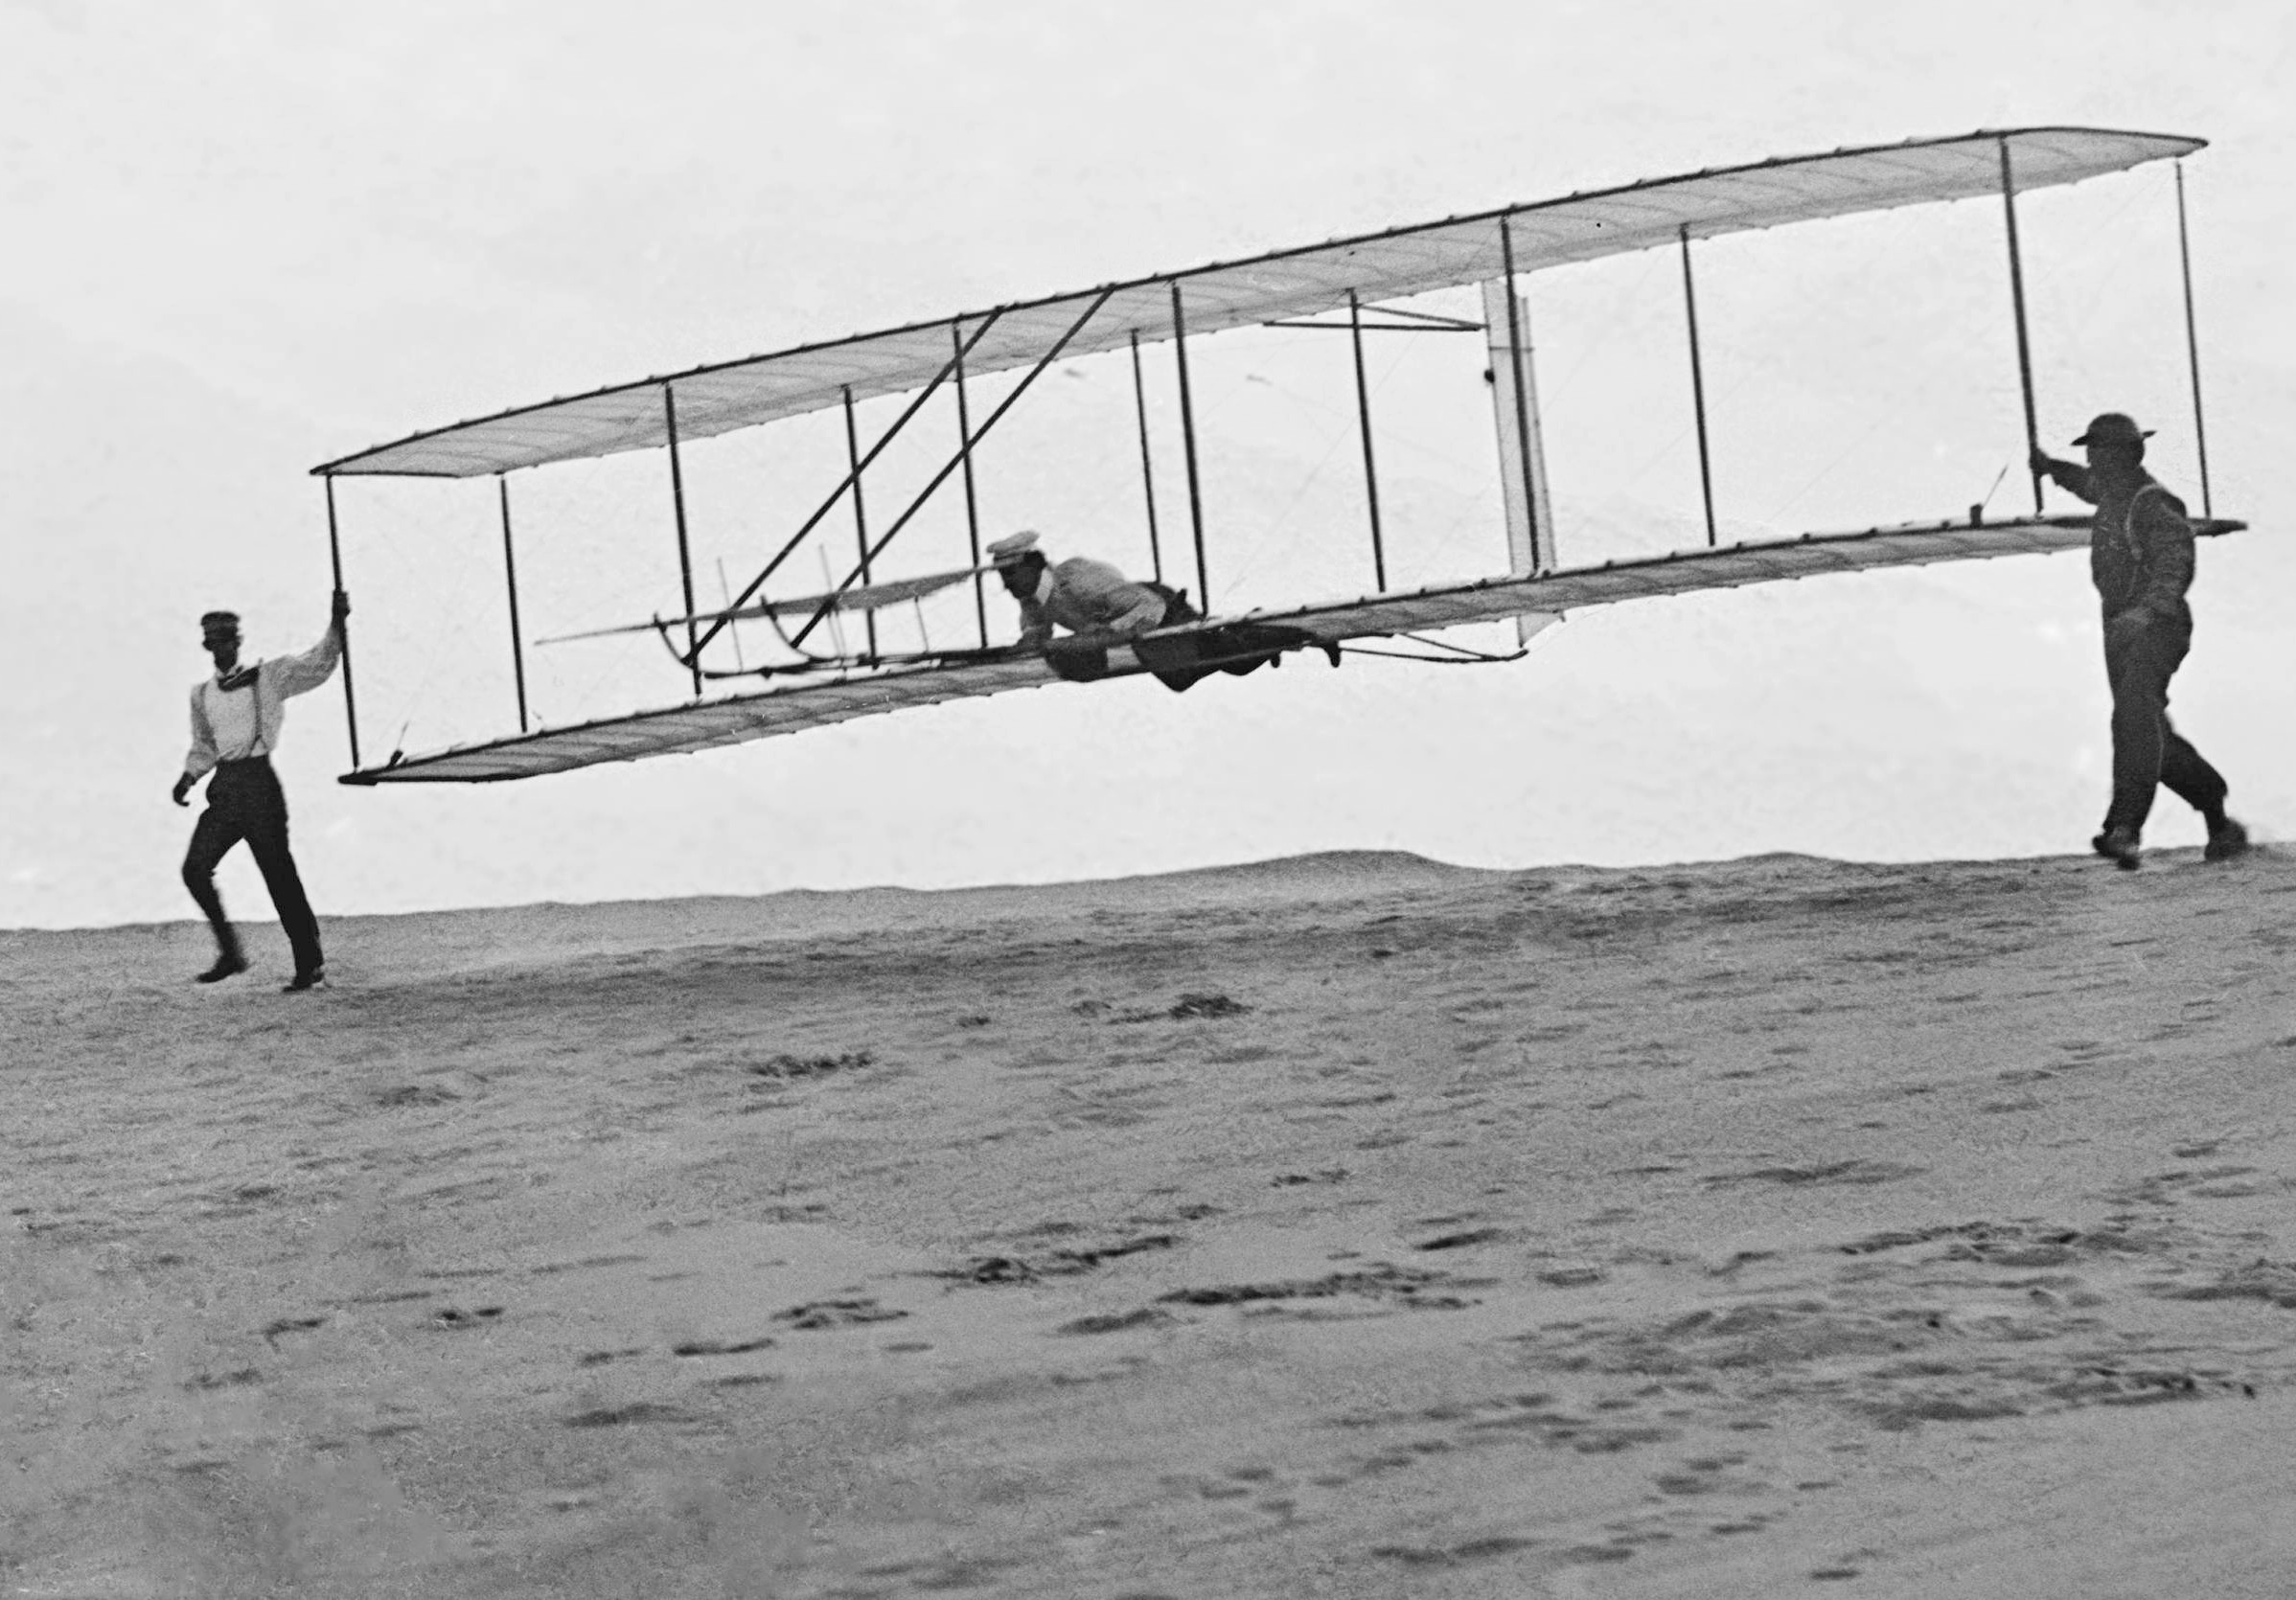 https://commons.wikimedia.org/wiki/File%3A1902_Wright_Brothers'_Glider_Tests_-_GPN-2002-000125.jpg